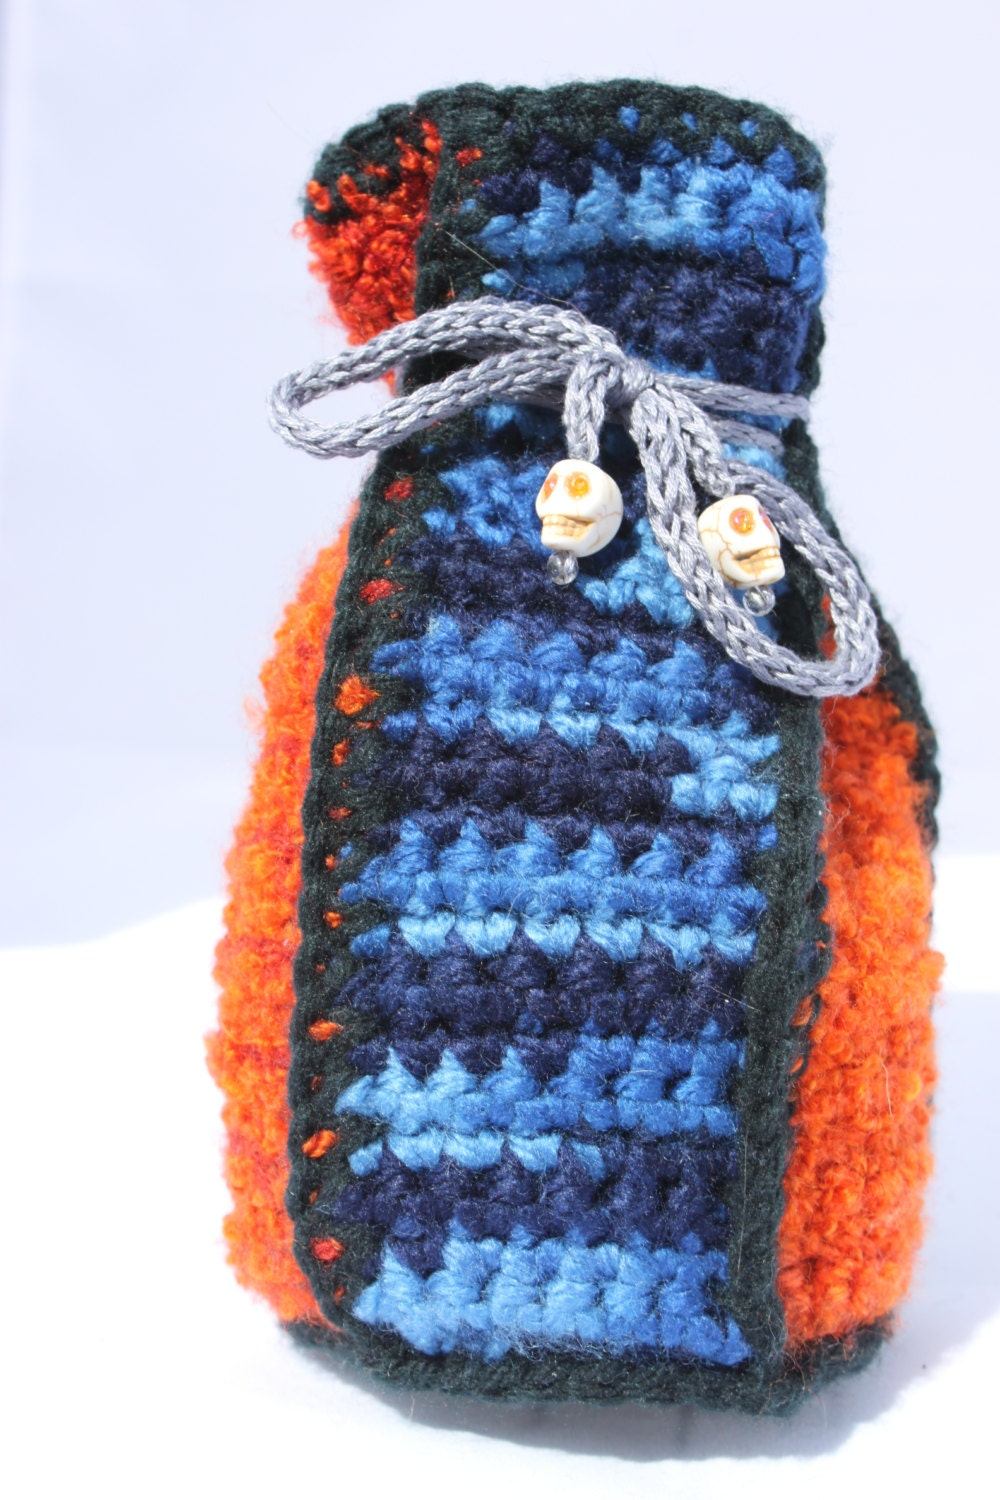 Dragon Dice Bag Crochet Pattern : Harry Dresden Crocheted drawstring dicebag dice bag by ...